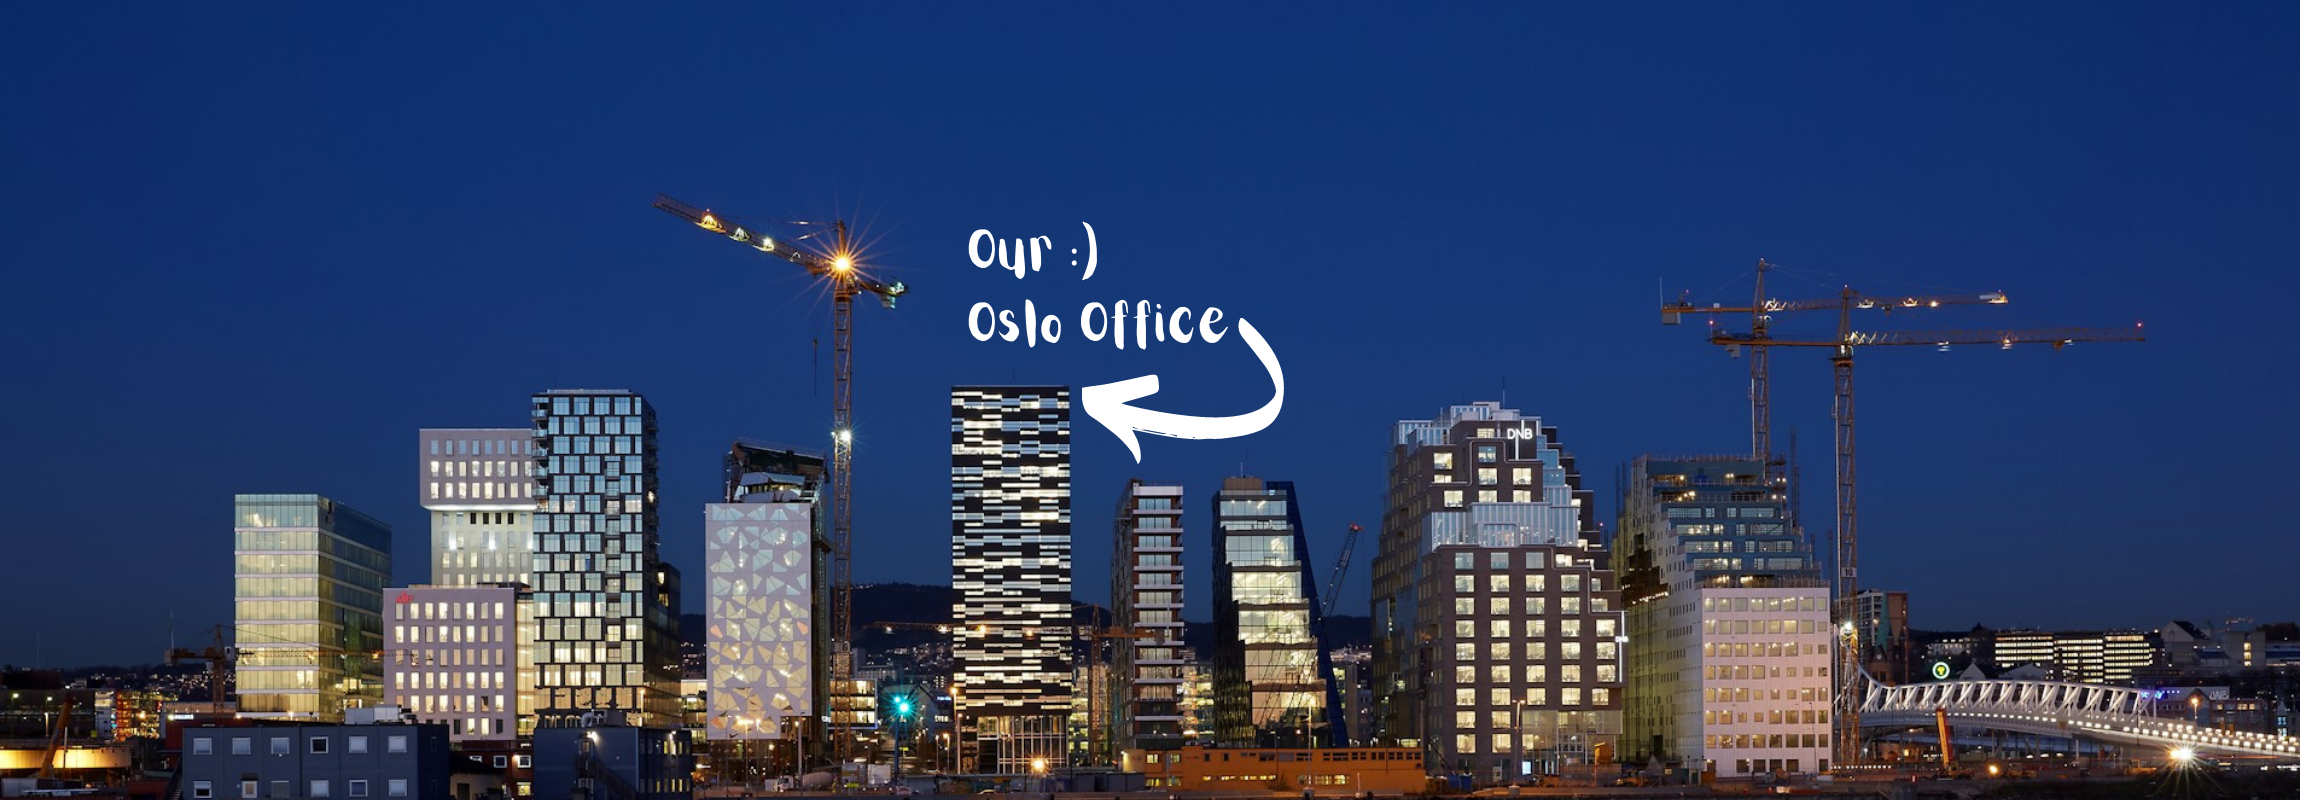 Our Oslo Office 2